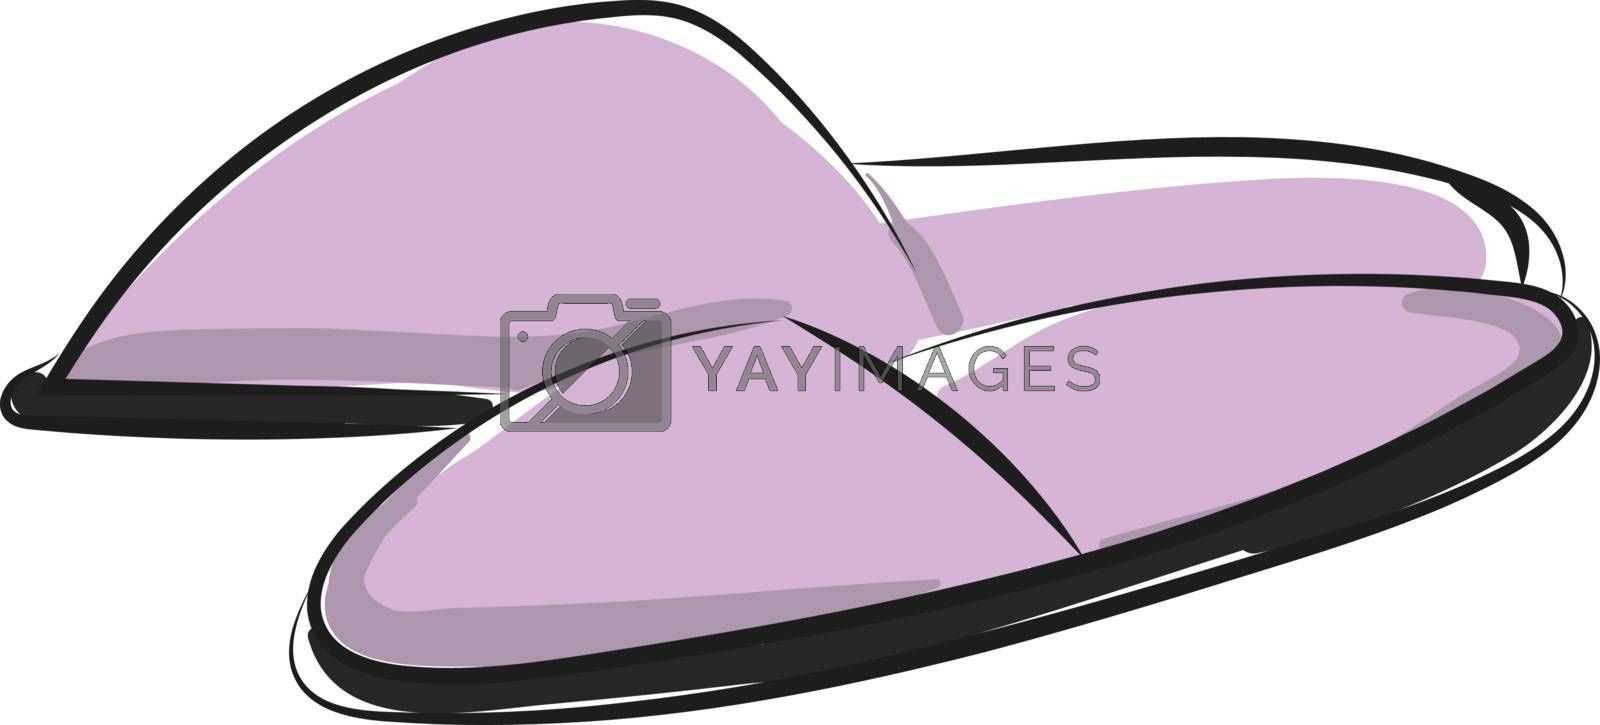 Royalty free image of Closed toe unisex indoor slippers/Carpet slippers/Bedroom slippe by Morphart